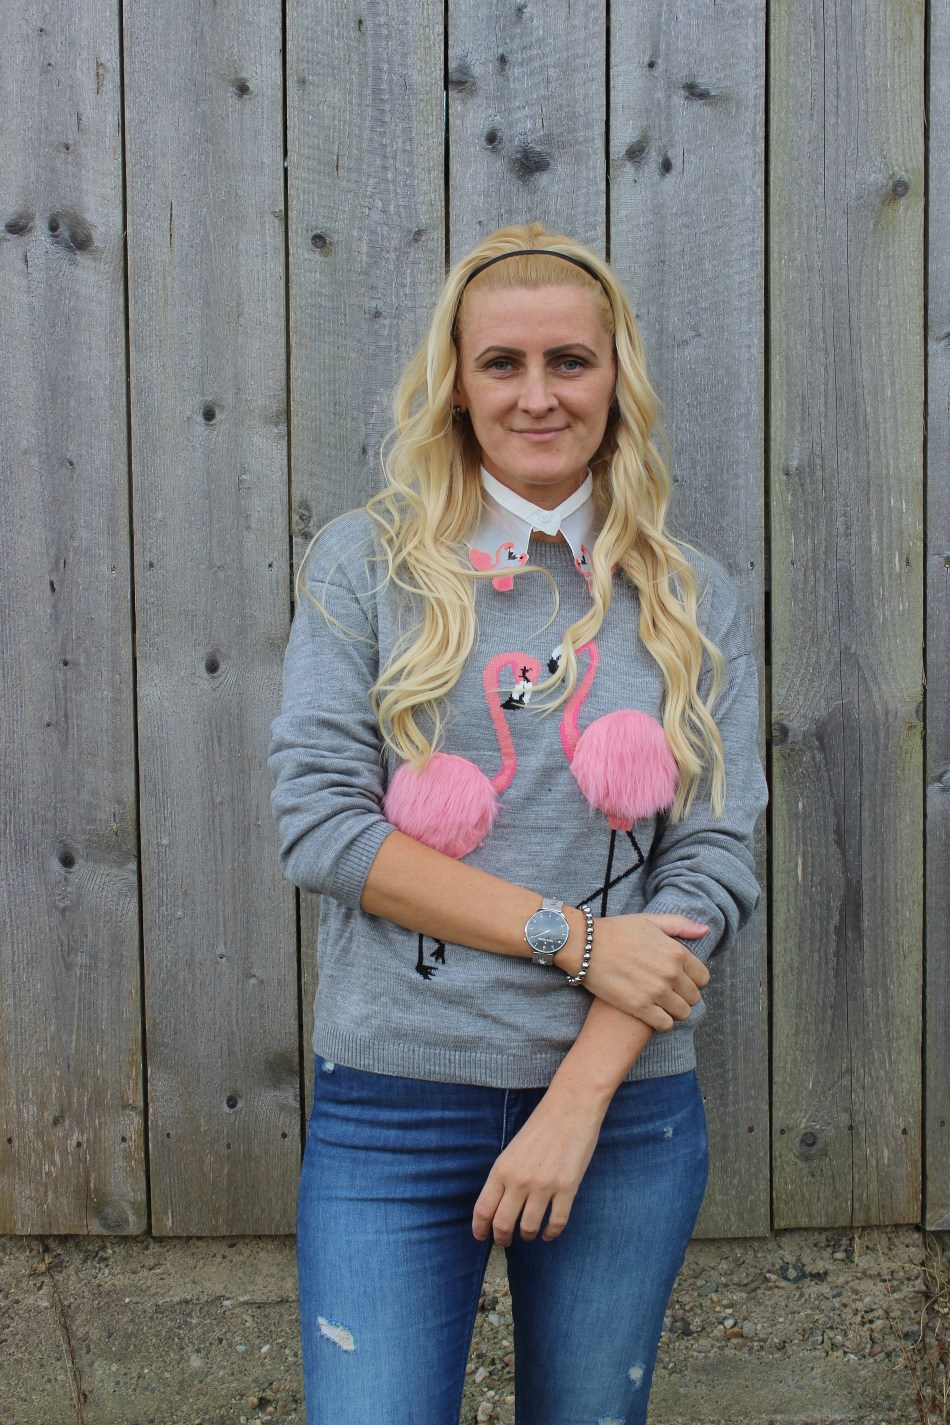 4-Jahreszeiten-Flamingo-Pulli-Denim-Fringes-Fringed-Jeans-Chanel-Bag-Sweater-carrieslifestyle-Tamara-Prutsch